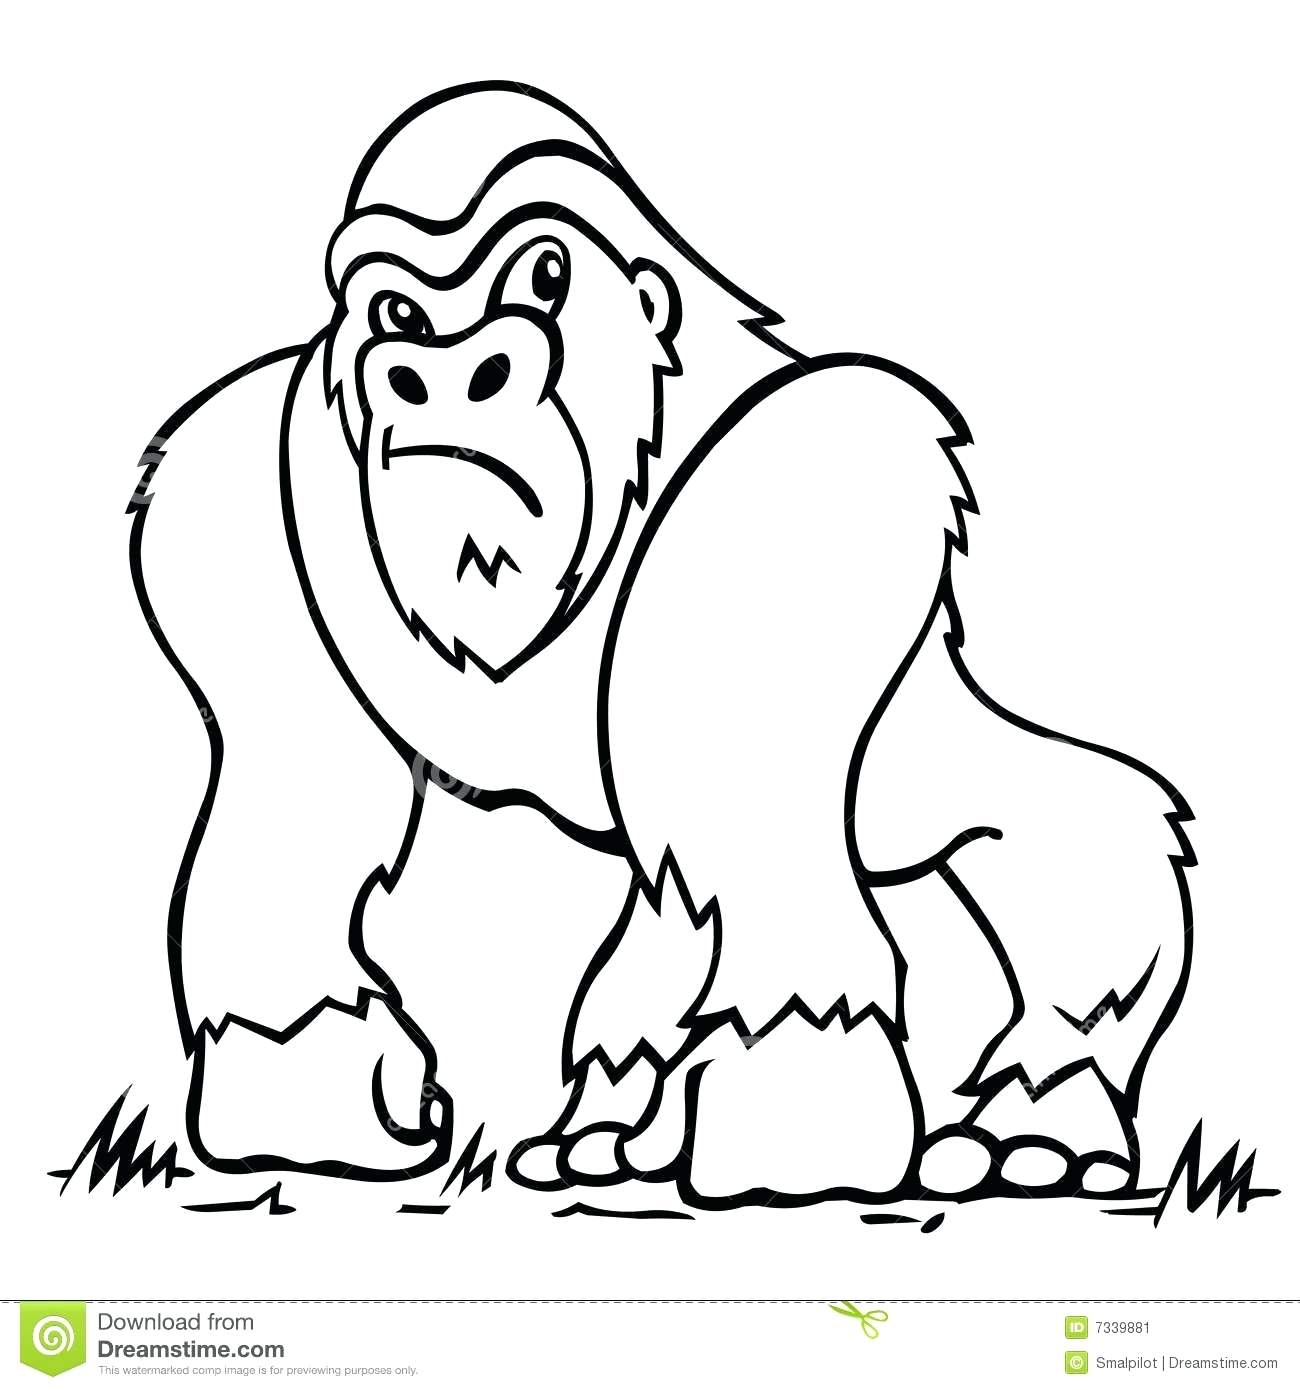 Gorilla Cartoon Drawing at GetDrawings.com | Free for personal use ...